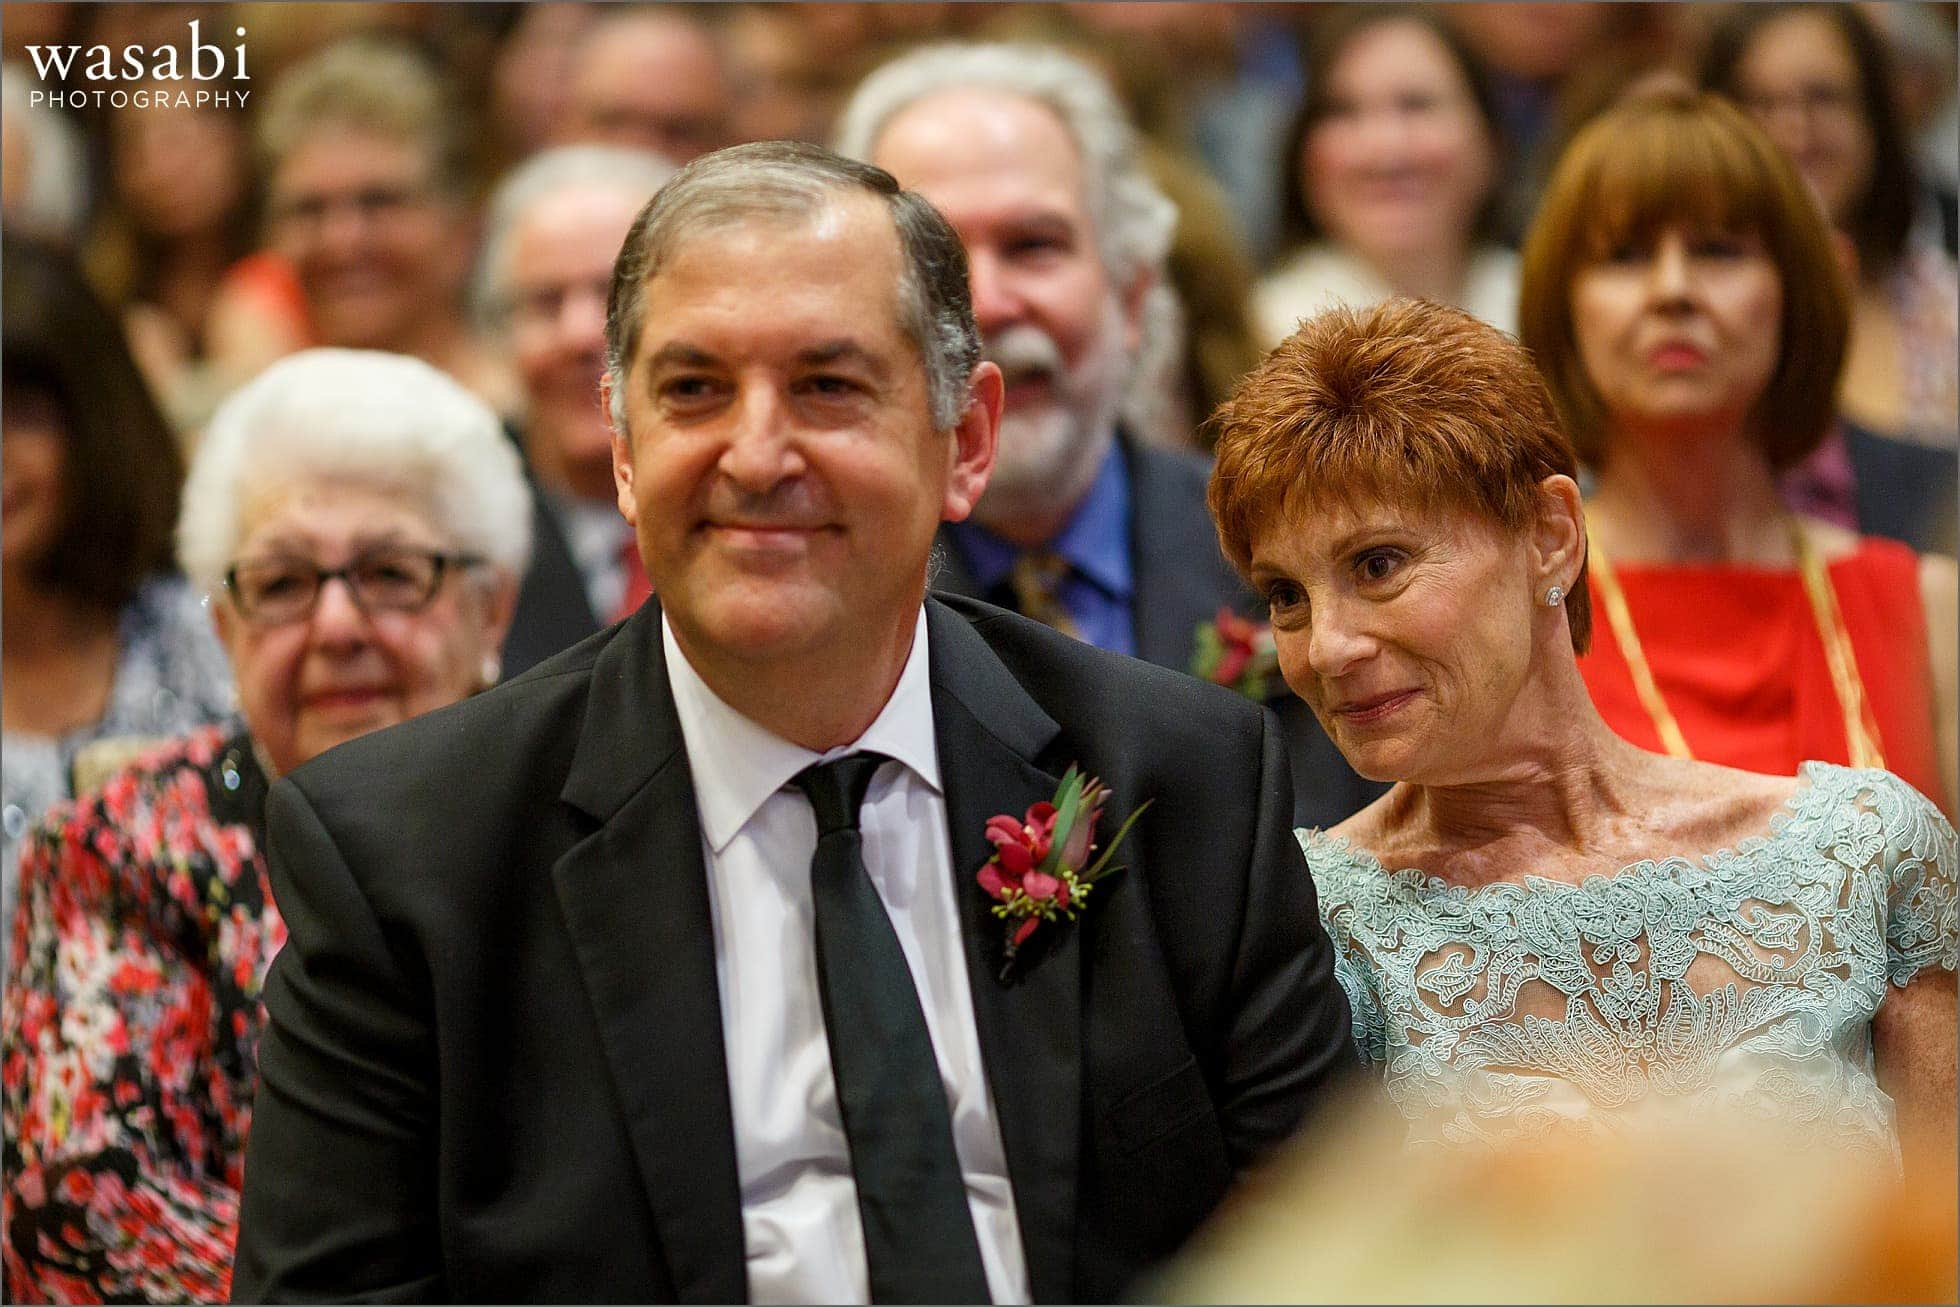 parents react while watching wedding ceremony at Lombard Westin Hotel